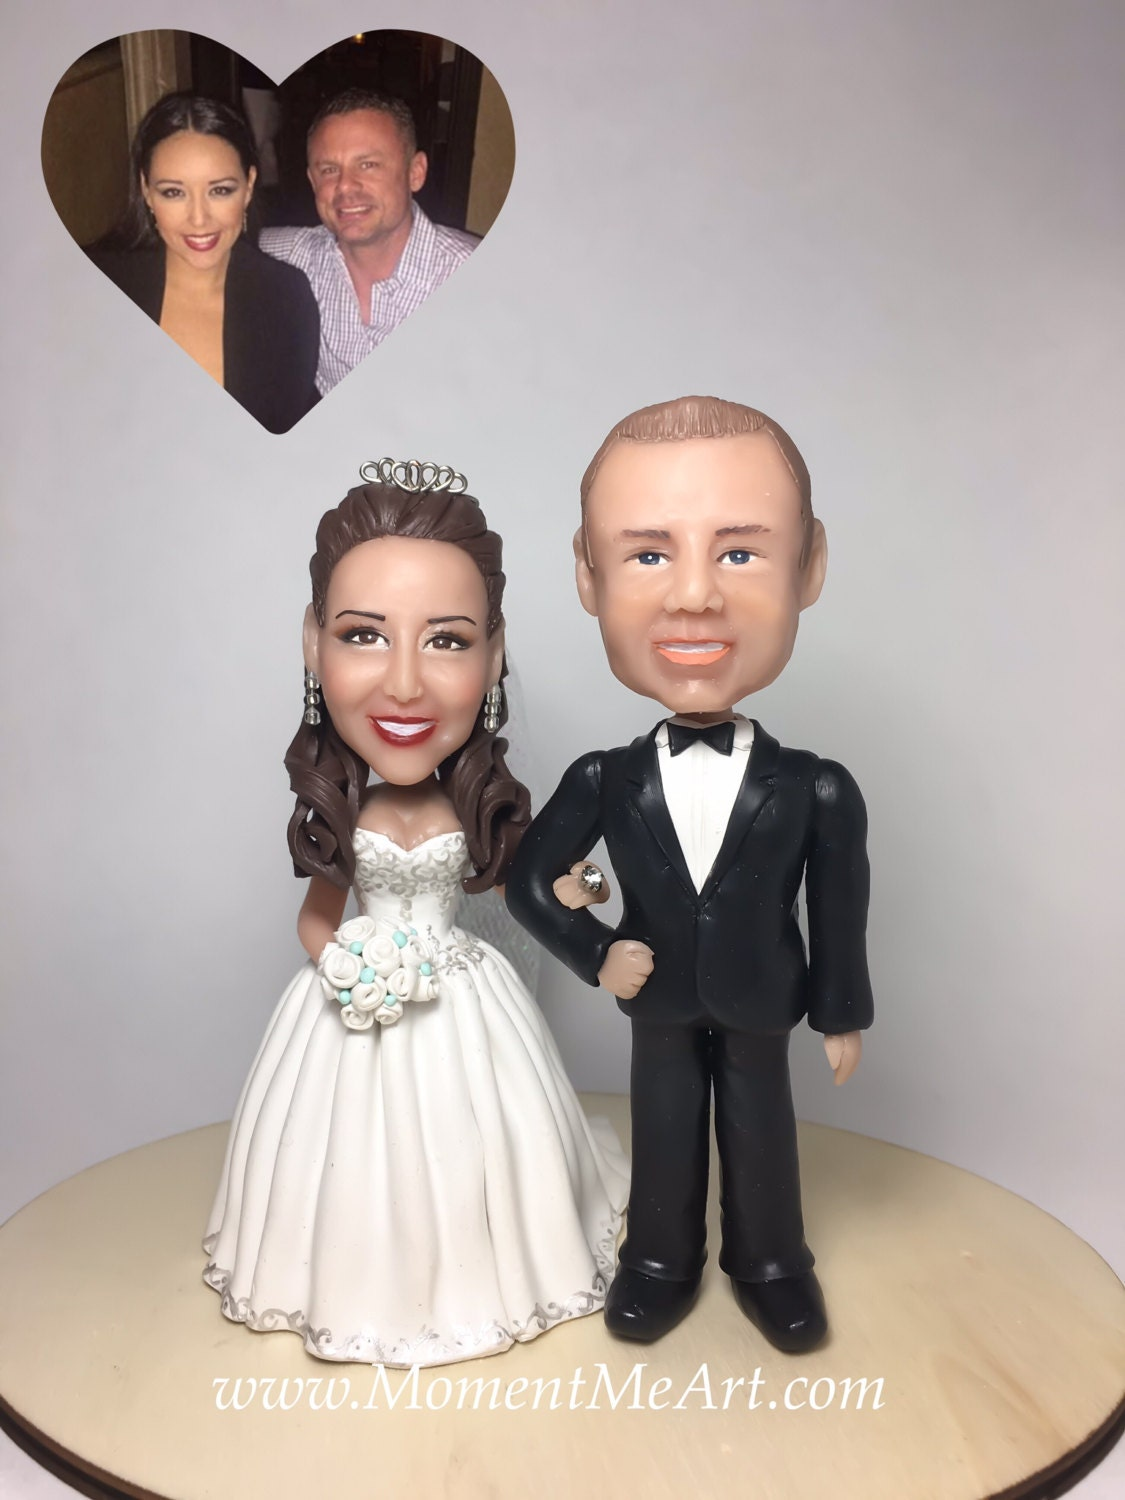 custom cake topper for wedding bride and groom cake by